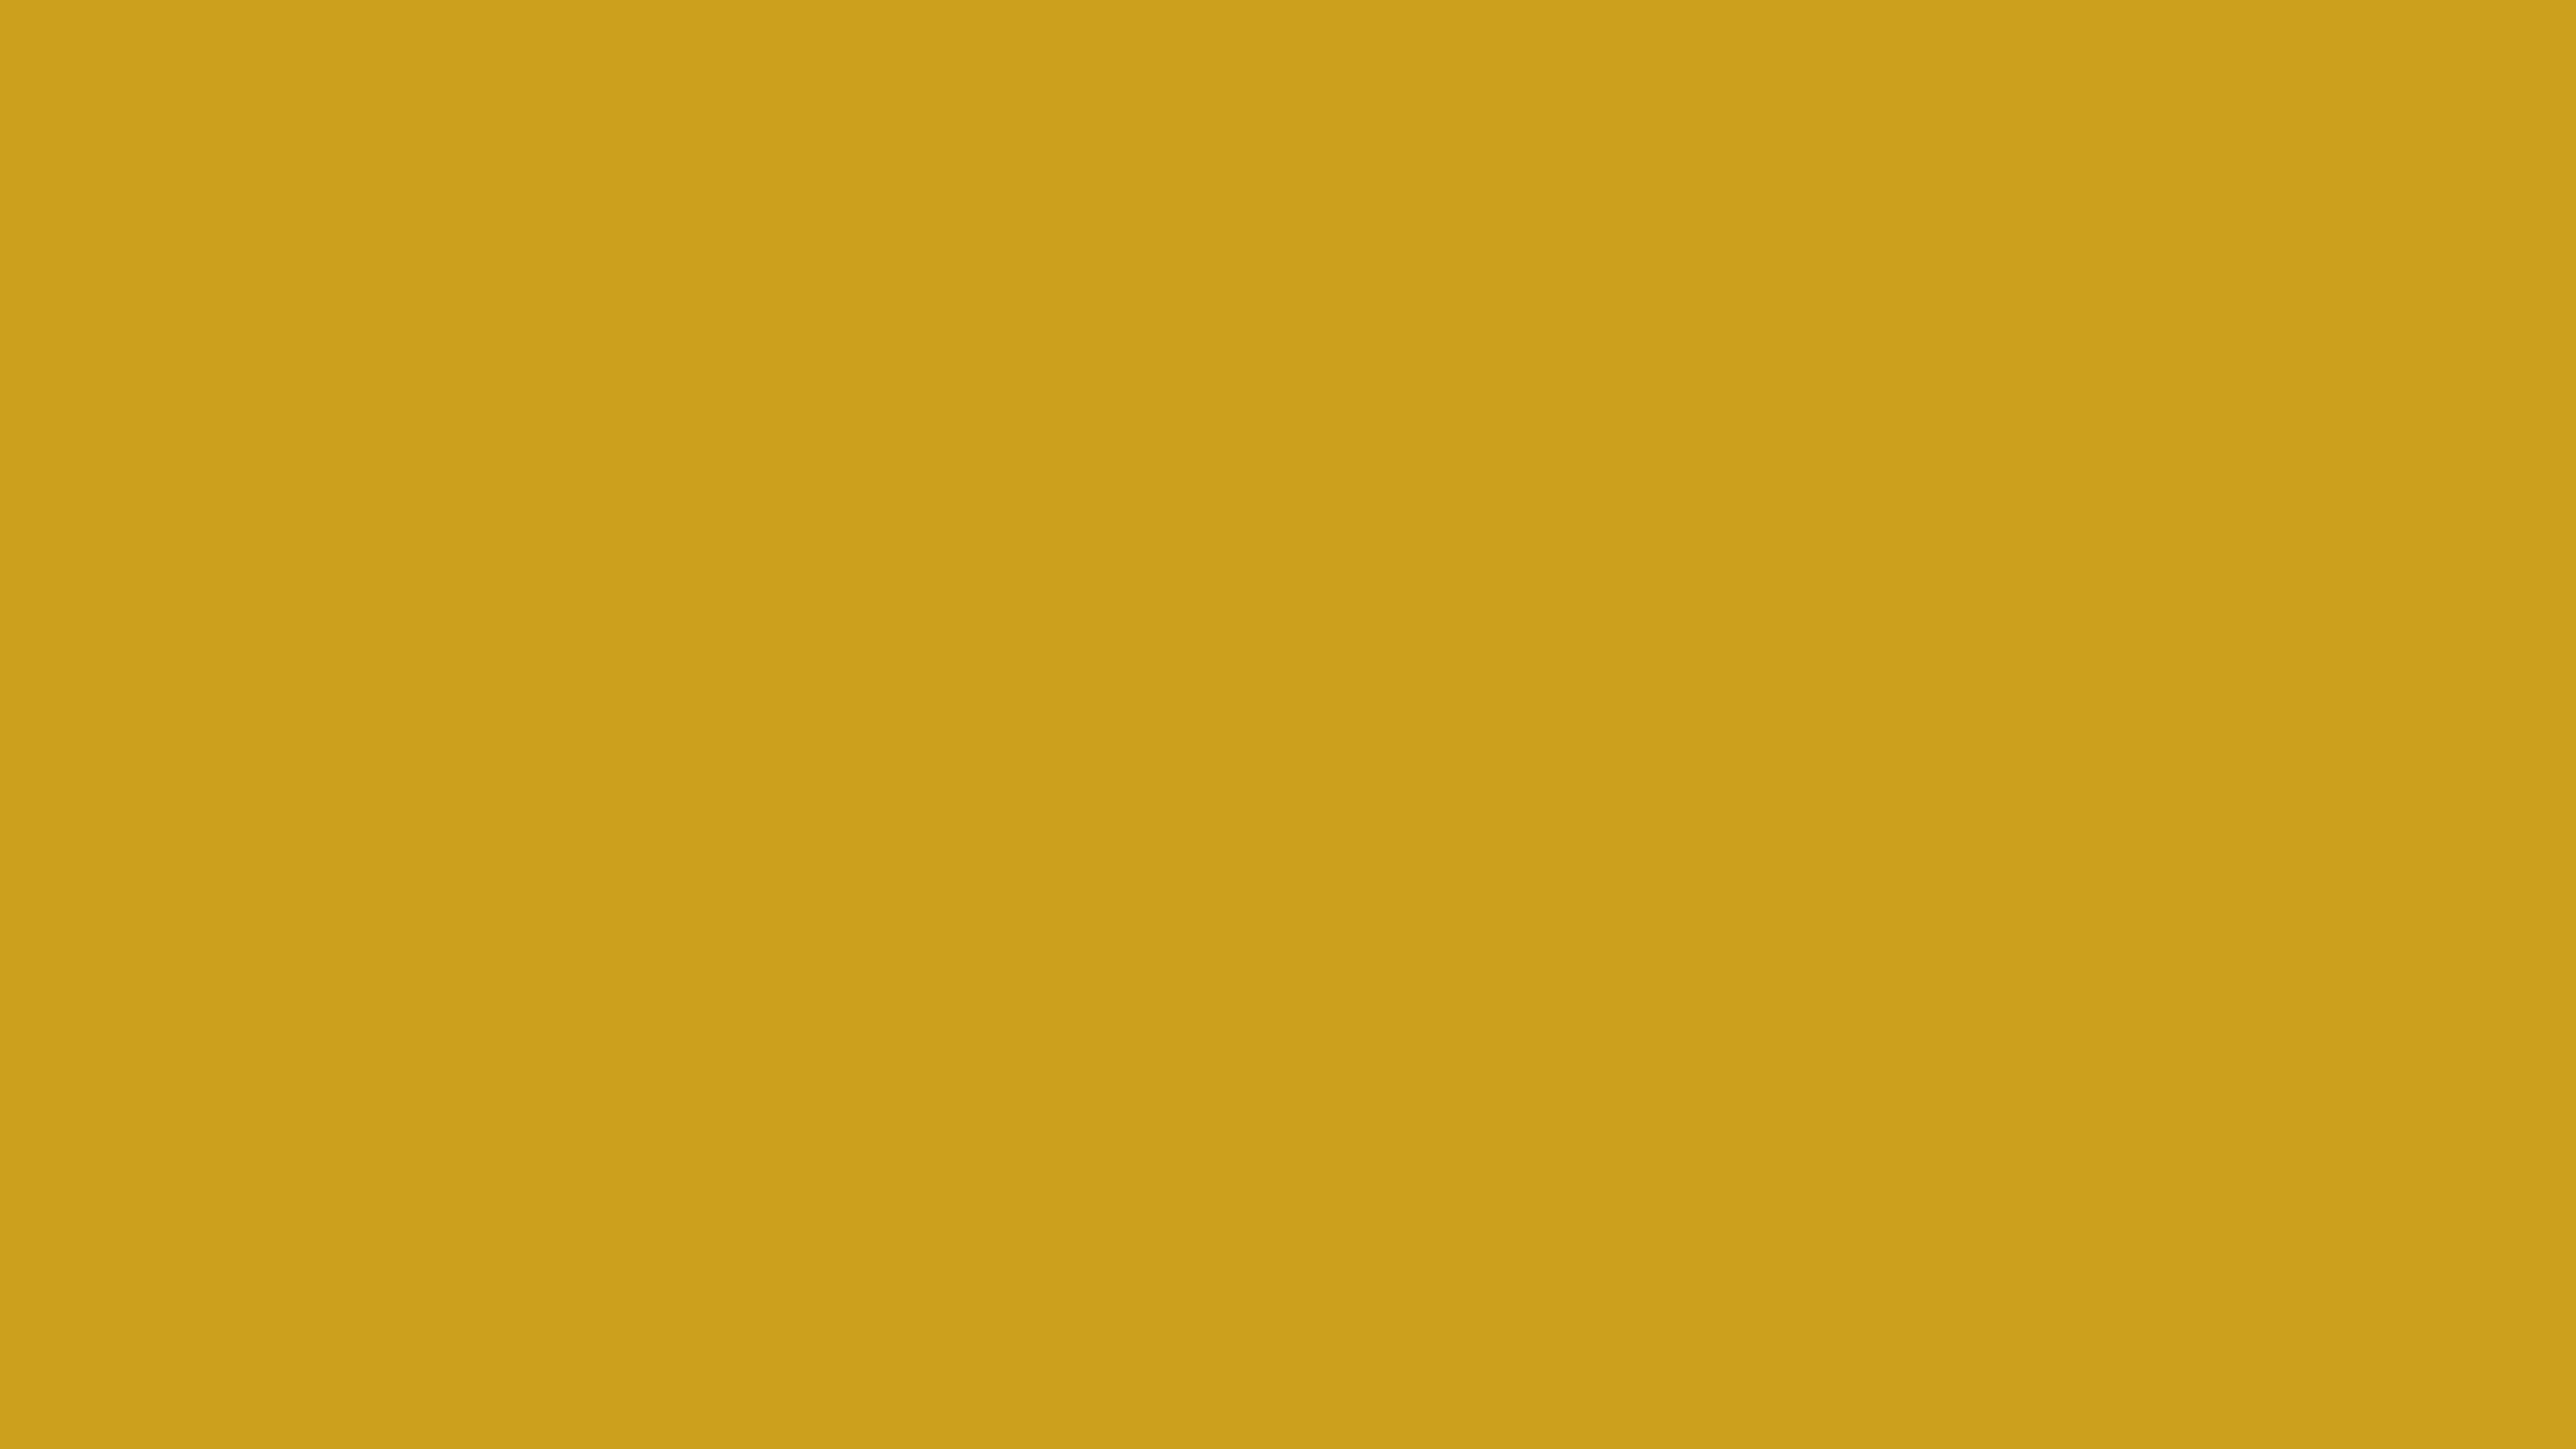 3840x2160 Lemon Curry Solid Color Background